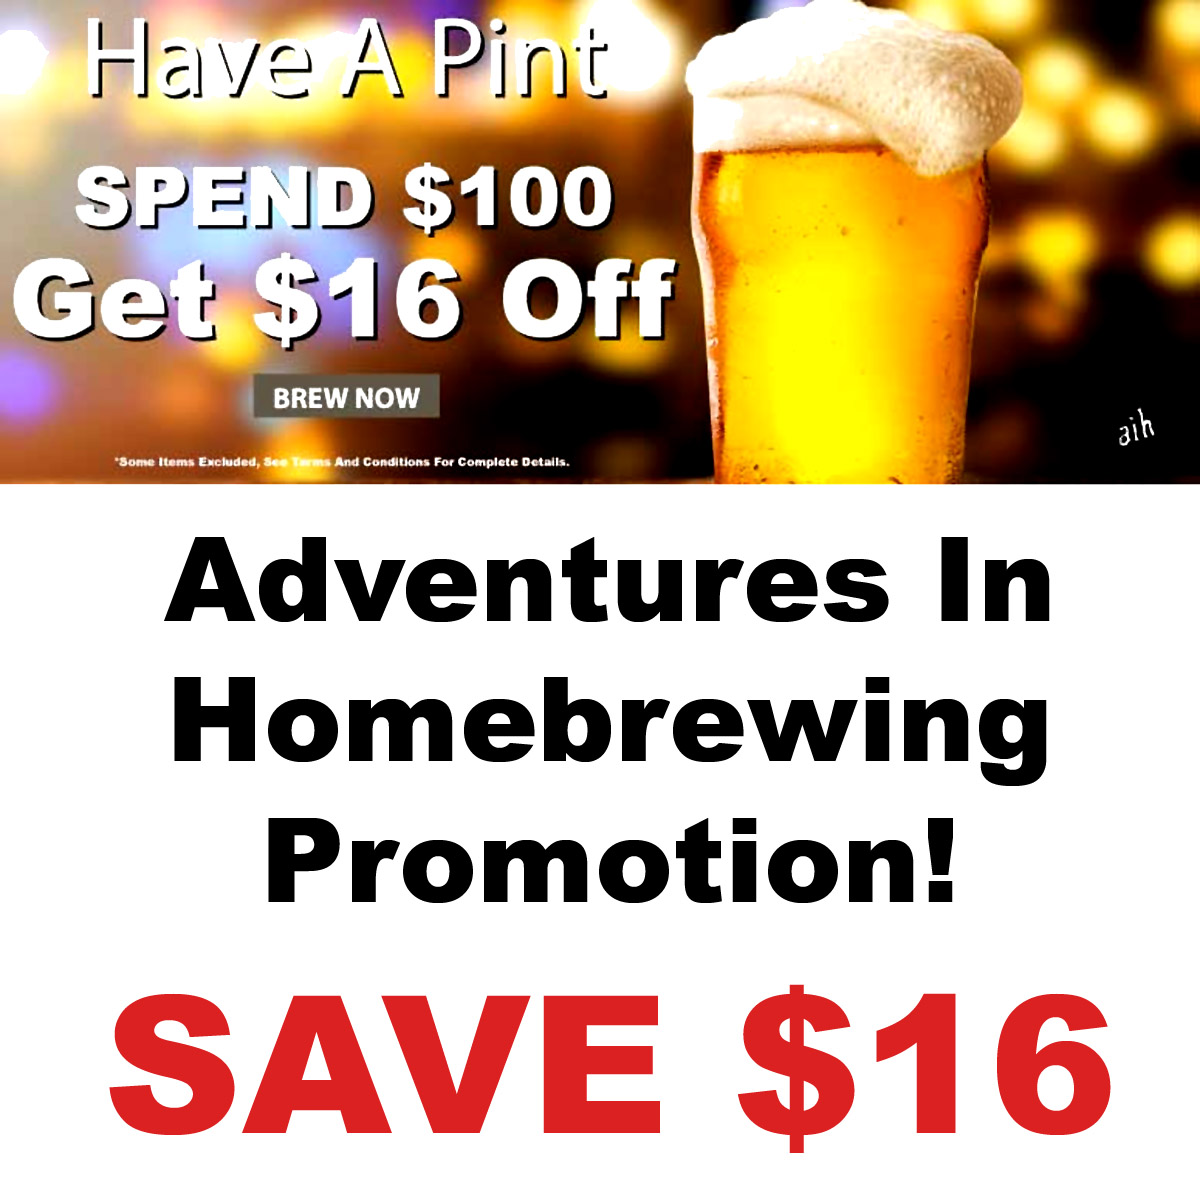 Home Wine Making Coupon Codes for Spend $100 at Adventures in Homebrewing and Get $16 Off With This Homebrewing.org Spring Promotion Event Coupon Code